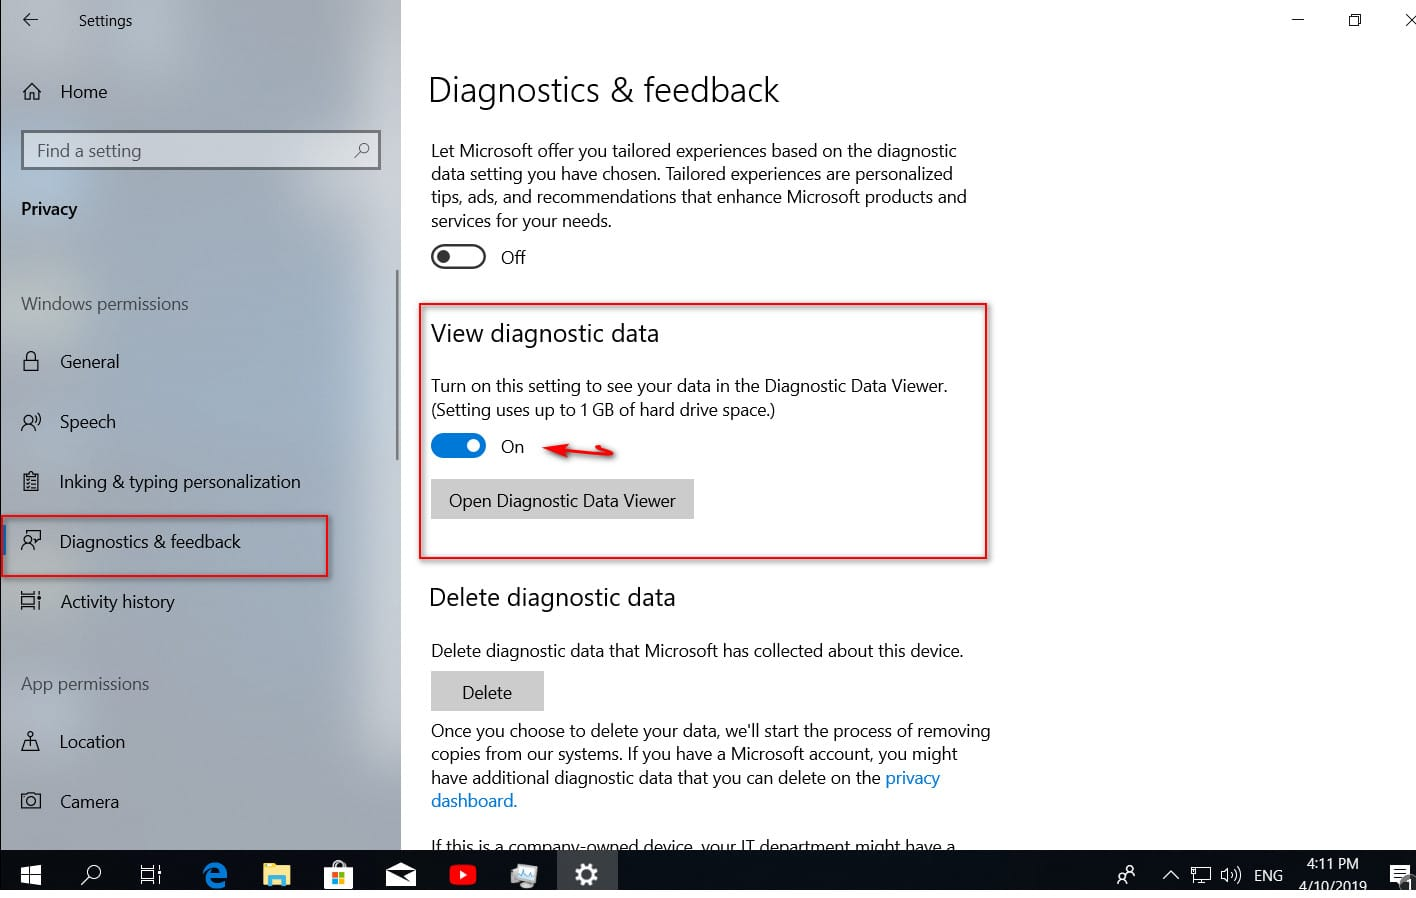 How to view and delete data sent to Microsoft